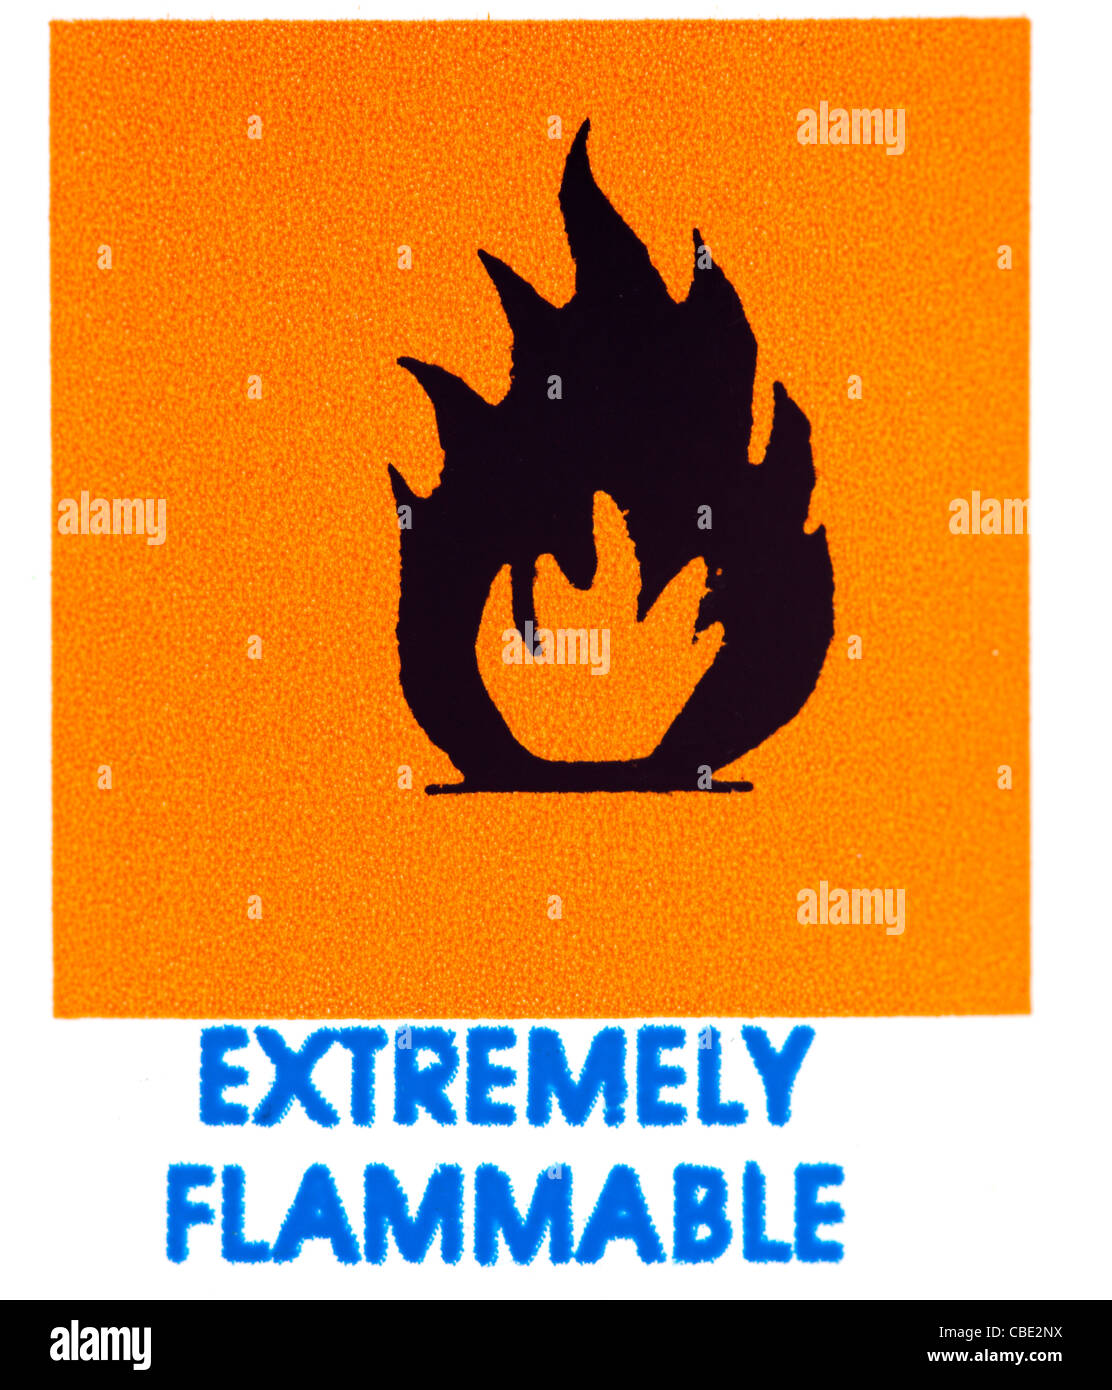 Extremely flammable warning - Stock Image